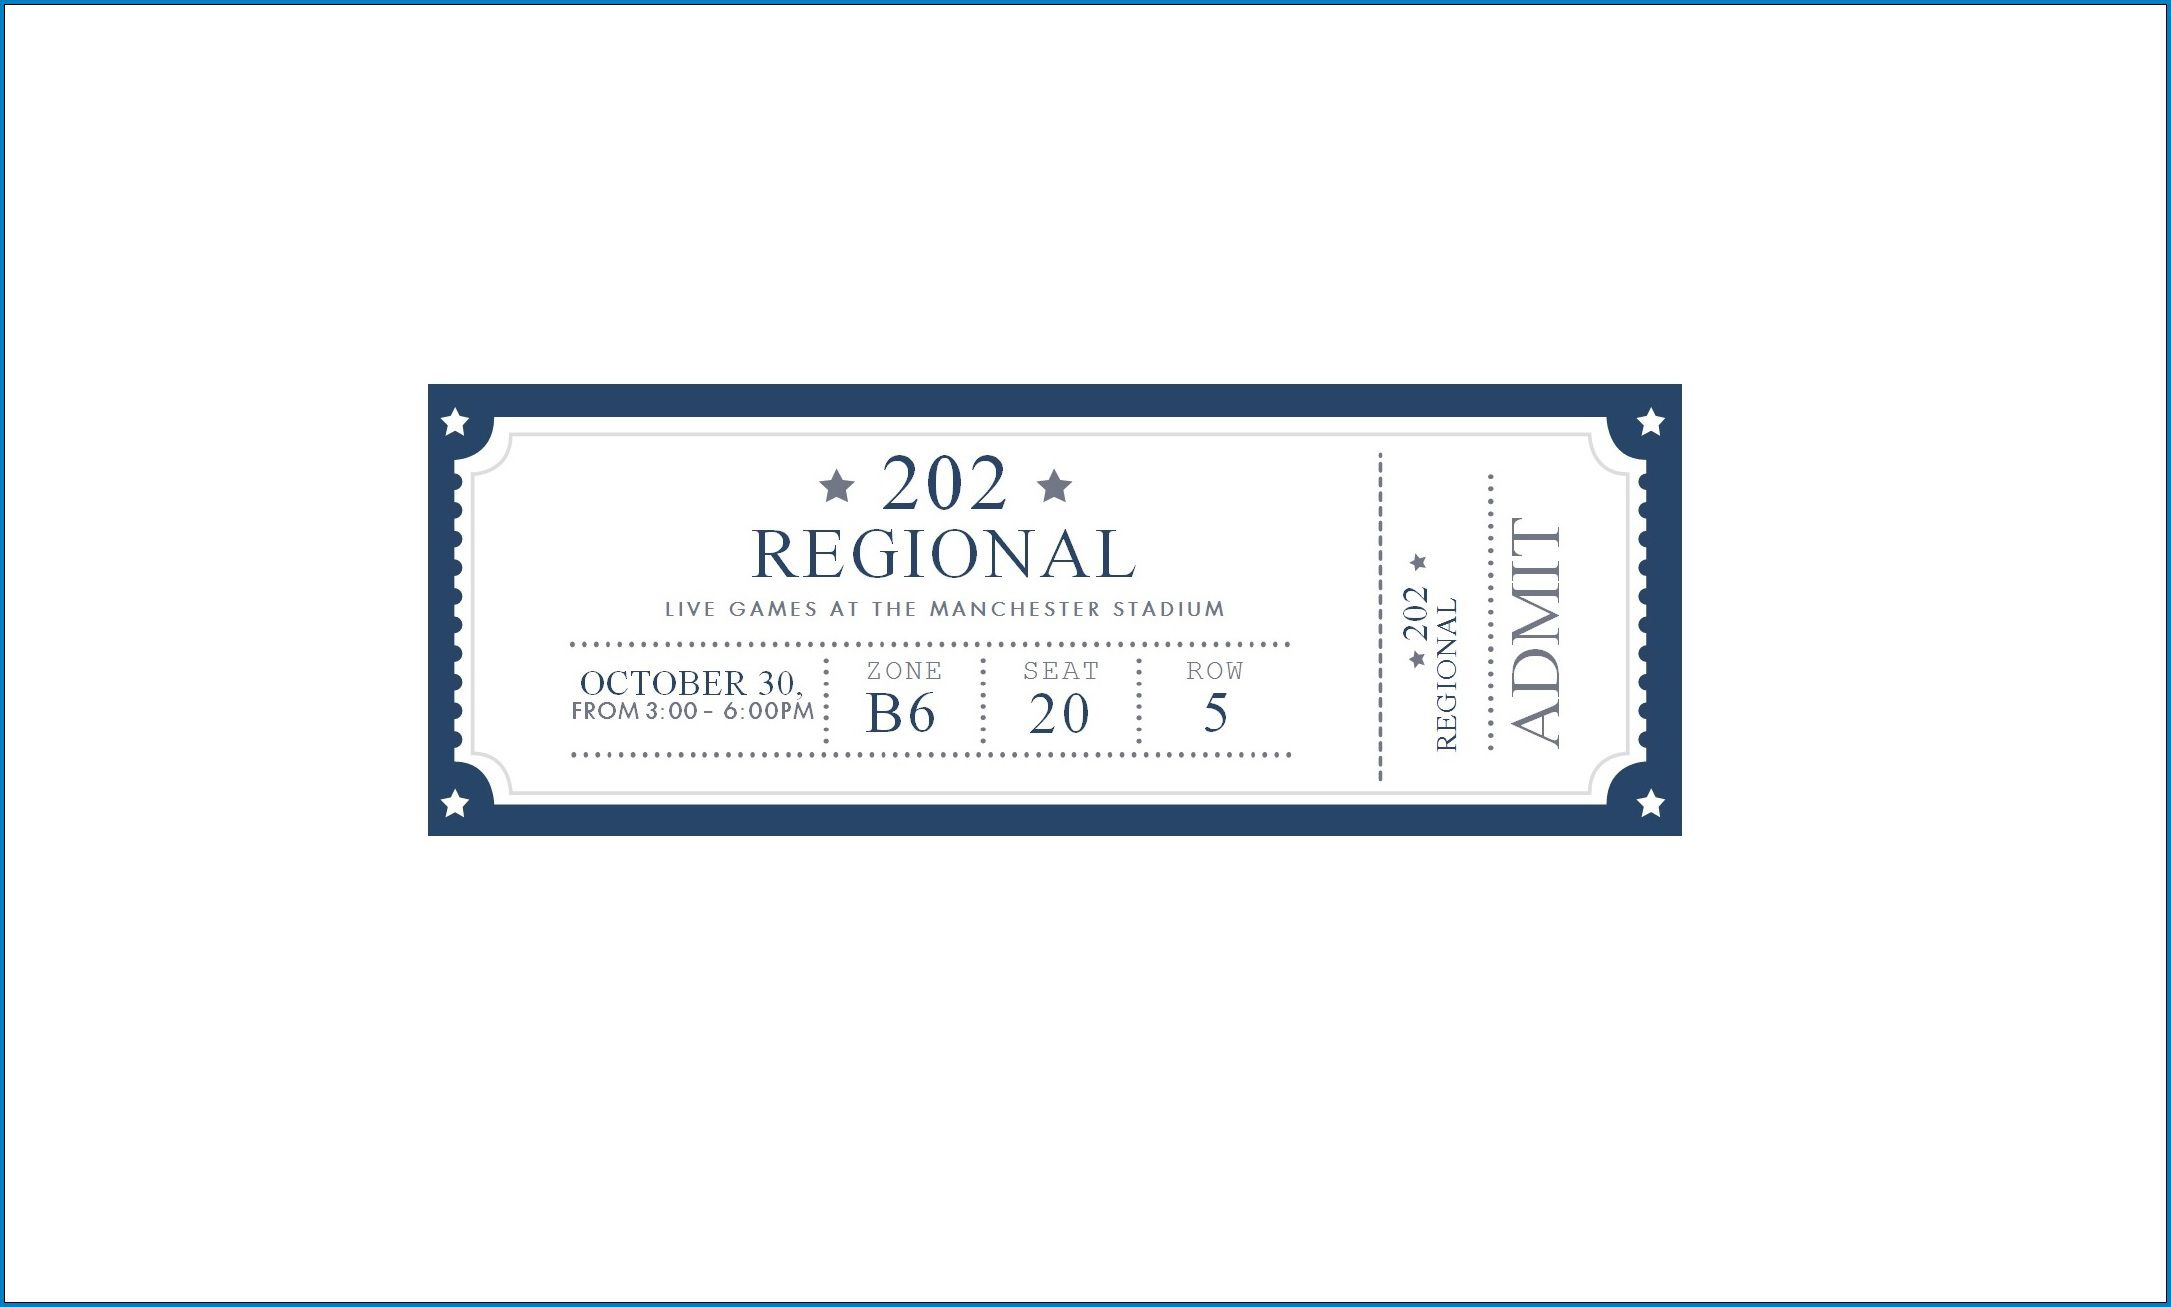 007 Fearsome Free Printable Ticket Stub Template High Definition Full